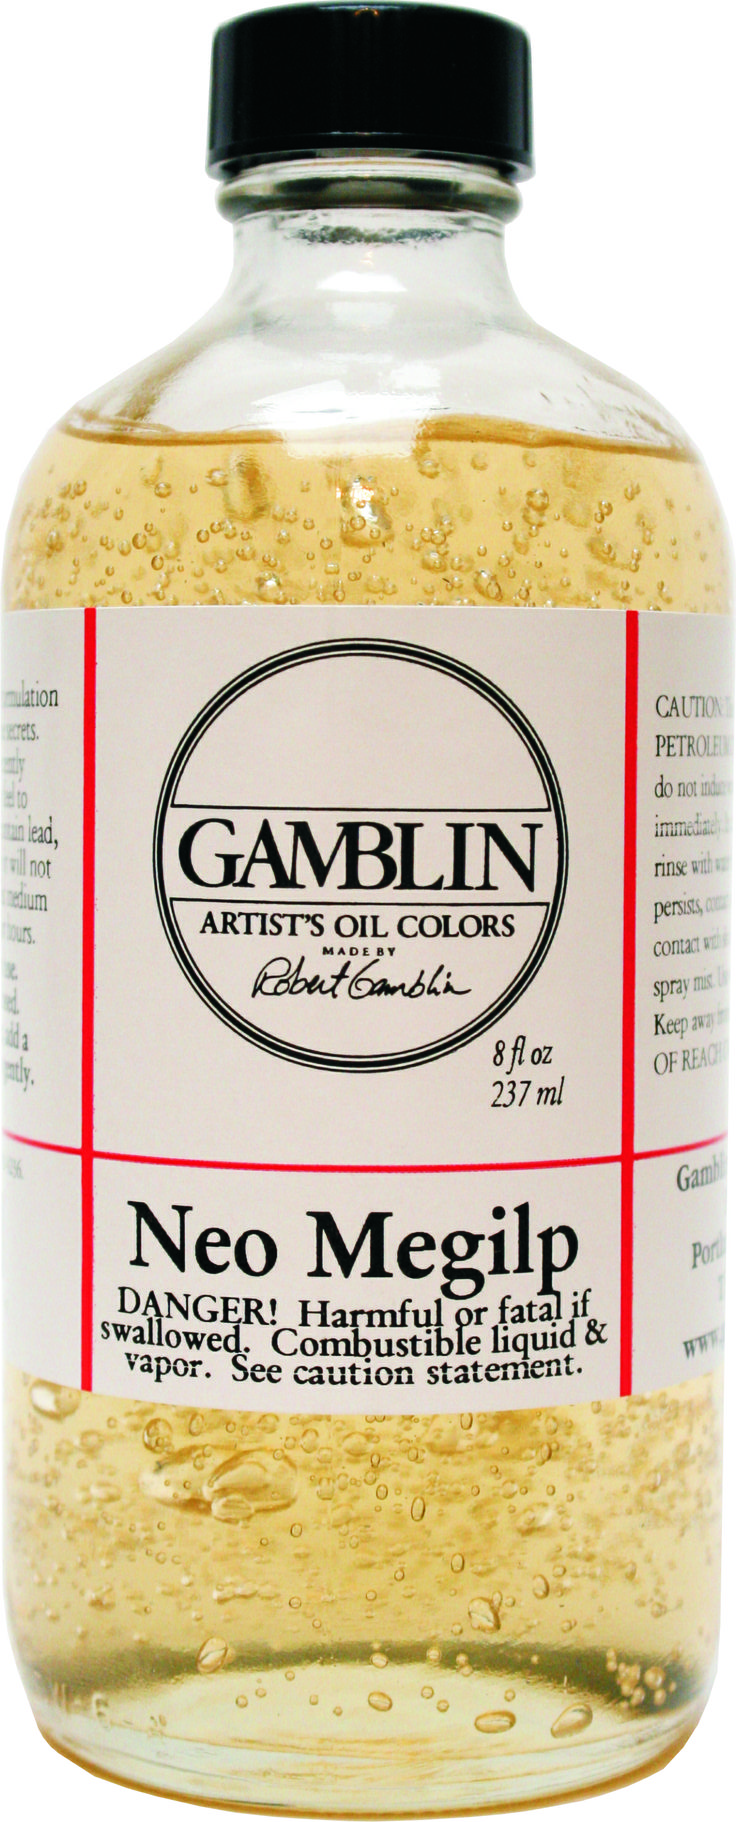 """Christopher Ahlers from Wyndham Art Supplies in Guelph, Ontario, Canada: """"Gamblin Artist Colors' oil colors and mediums are our fastest-growing professional oil paint line. Its Neo Megilp is surprisingly popular."""" gamblincolors.com"""